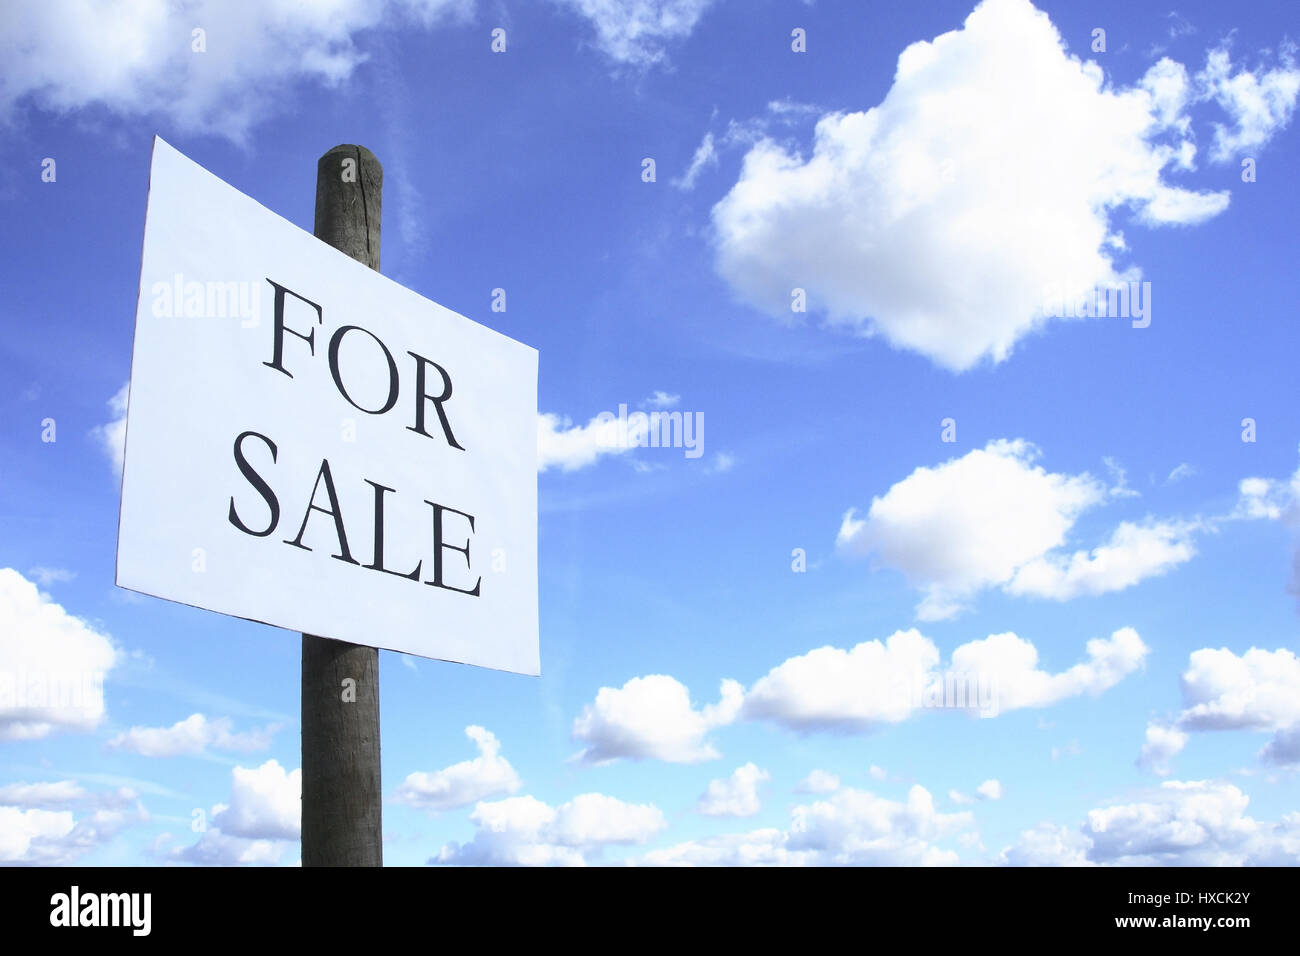 Heaven for sale - Stock Image